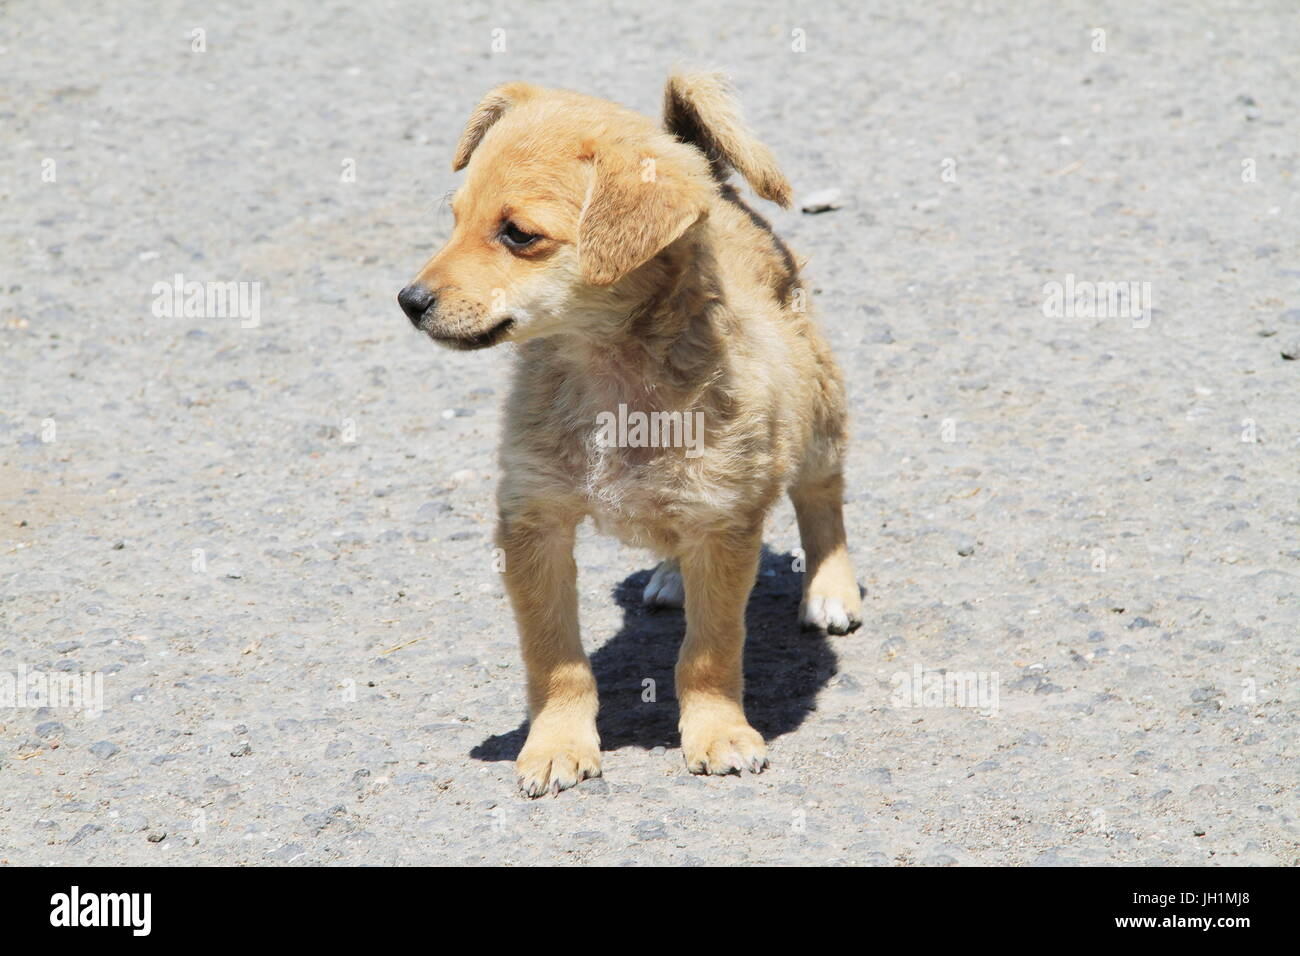 A picture or image showing a small brown mongrel puppy standing on a road surface. - Stock Image